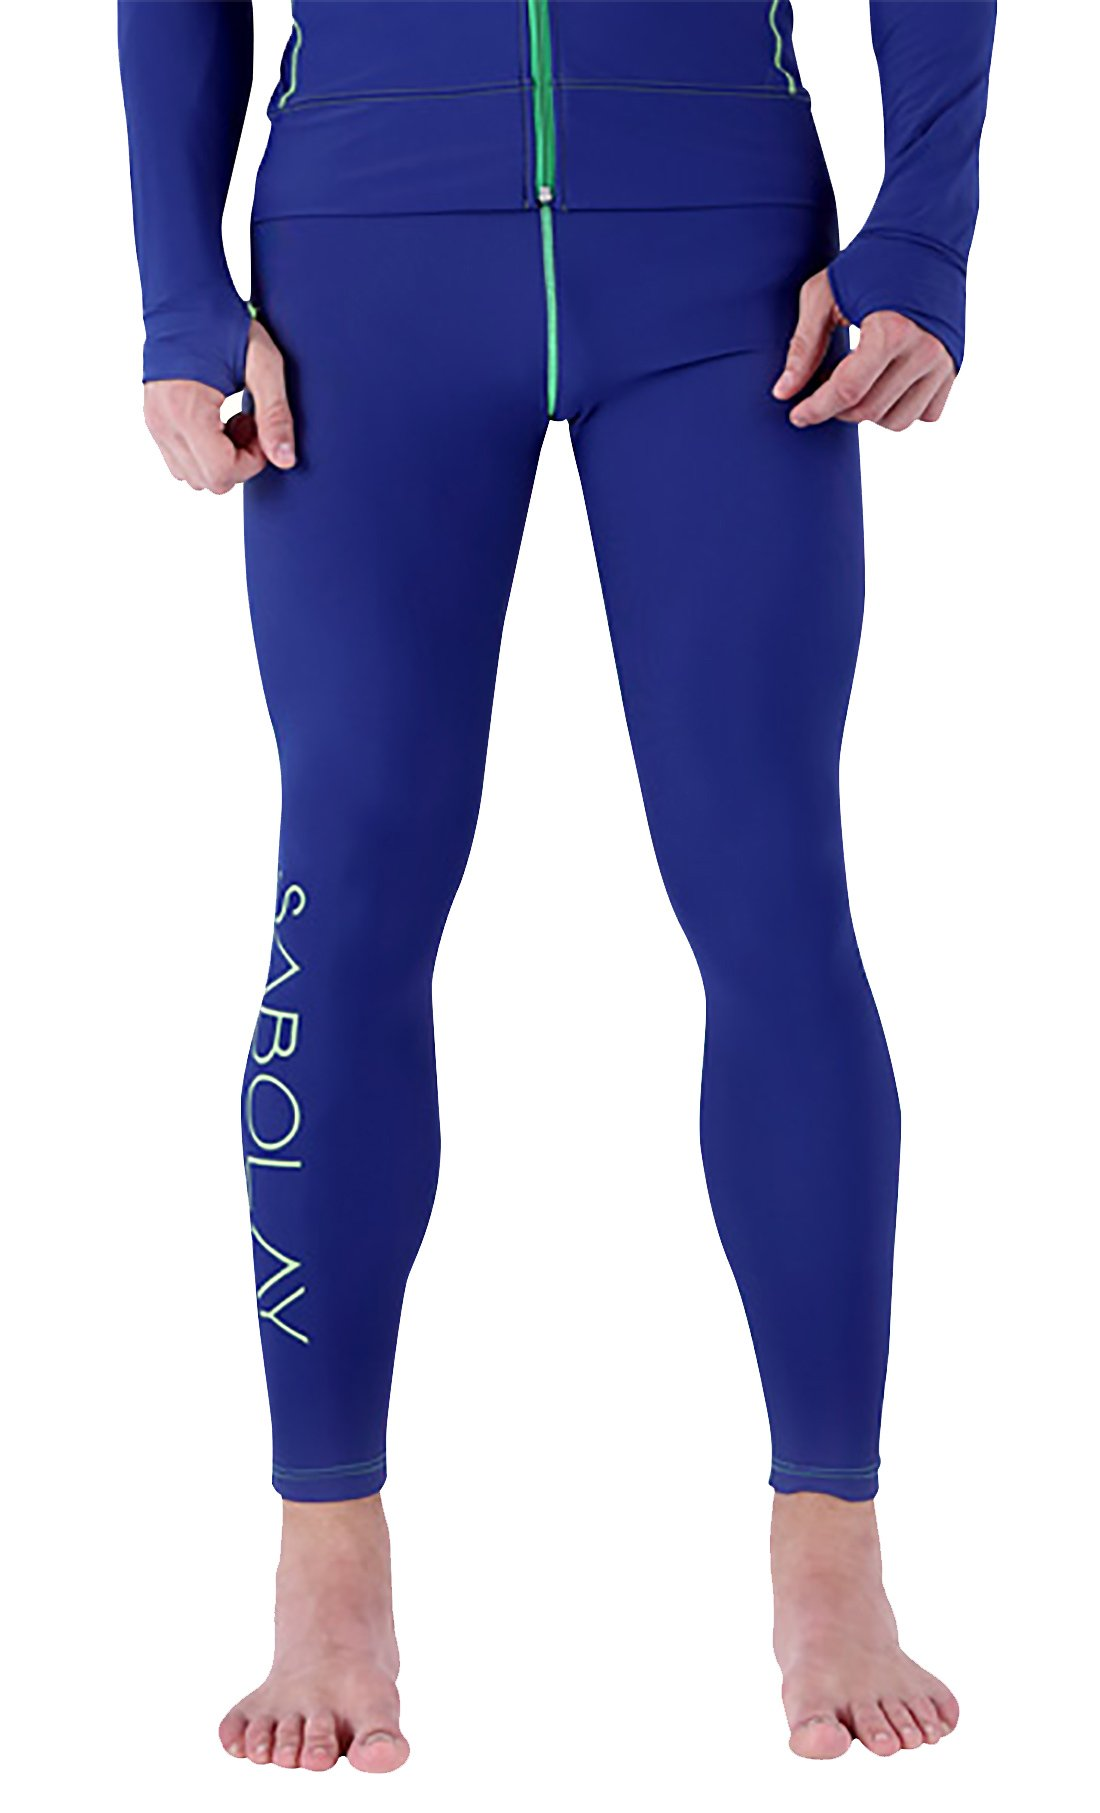 SABOLAY Men Wetsuit Pants Athletic Base Layer Tights for Water Sport Snorkeling Fish Diving Surfing Canoeing L by SABOLAY